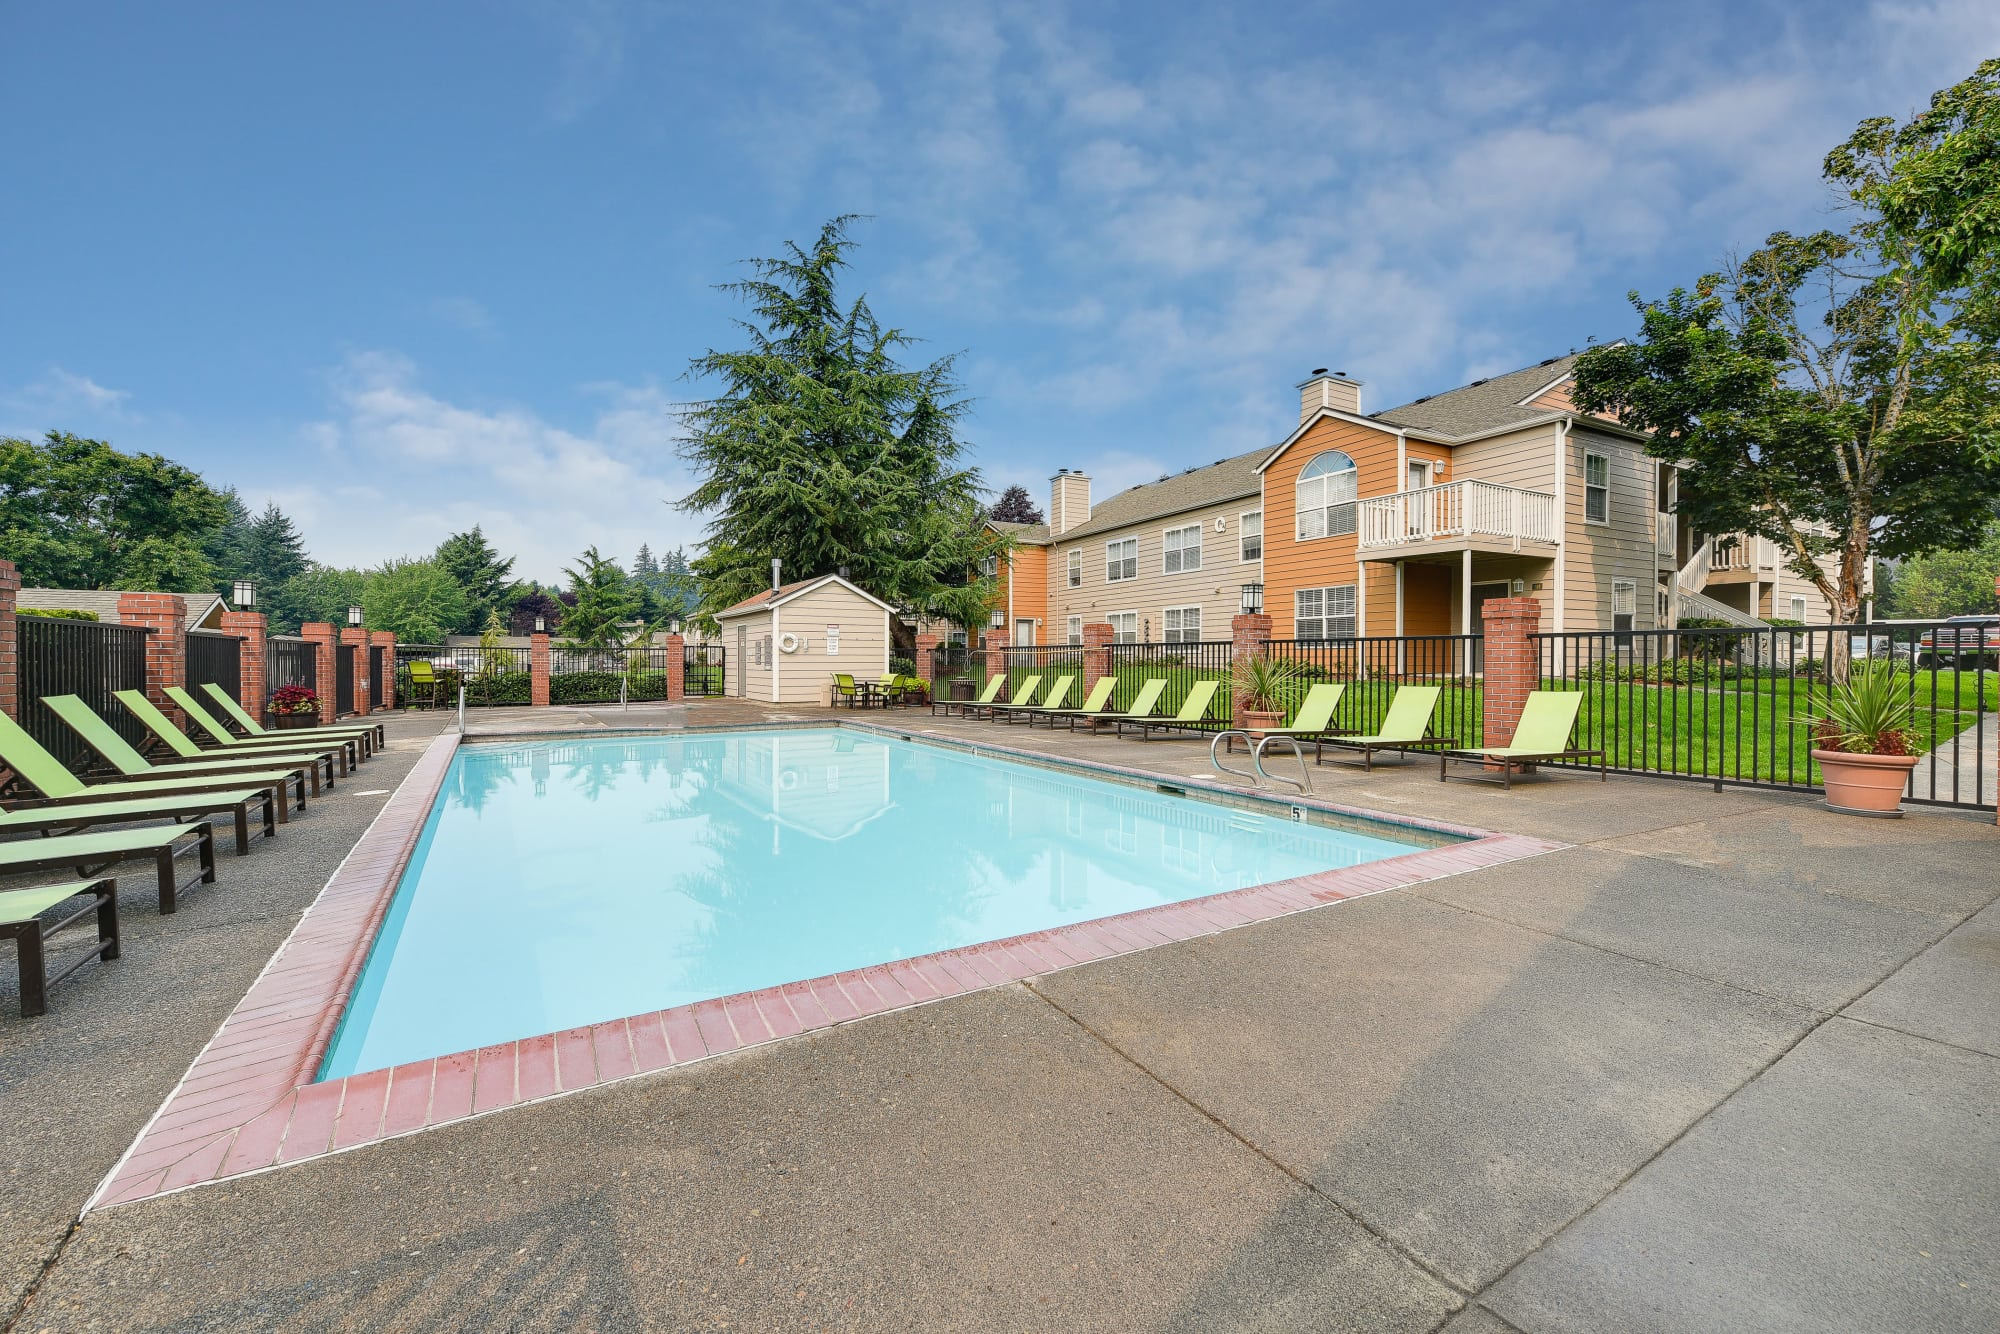 Lounge chairs by the pool at Carriage Park Apartments in Vancouver, Washington